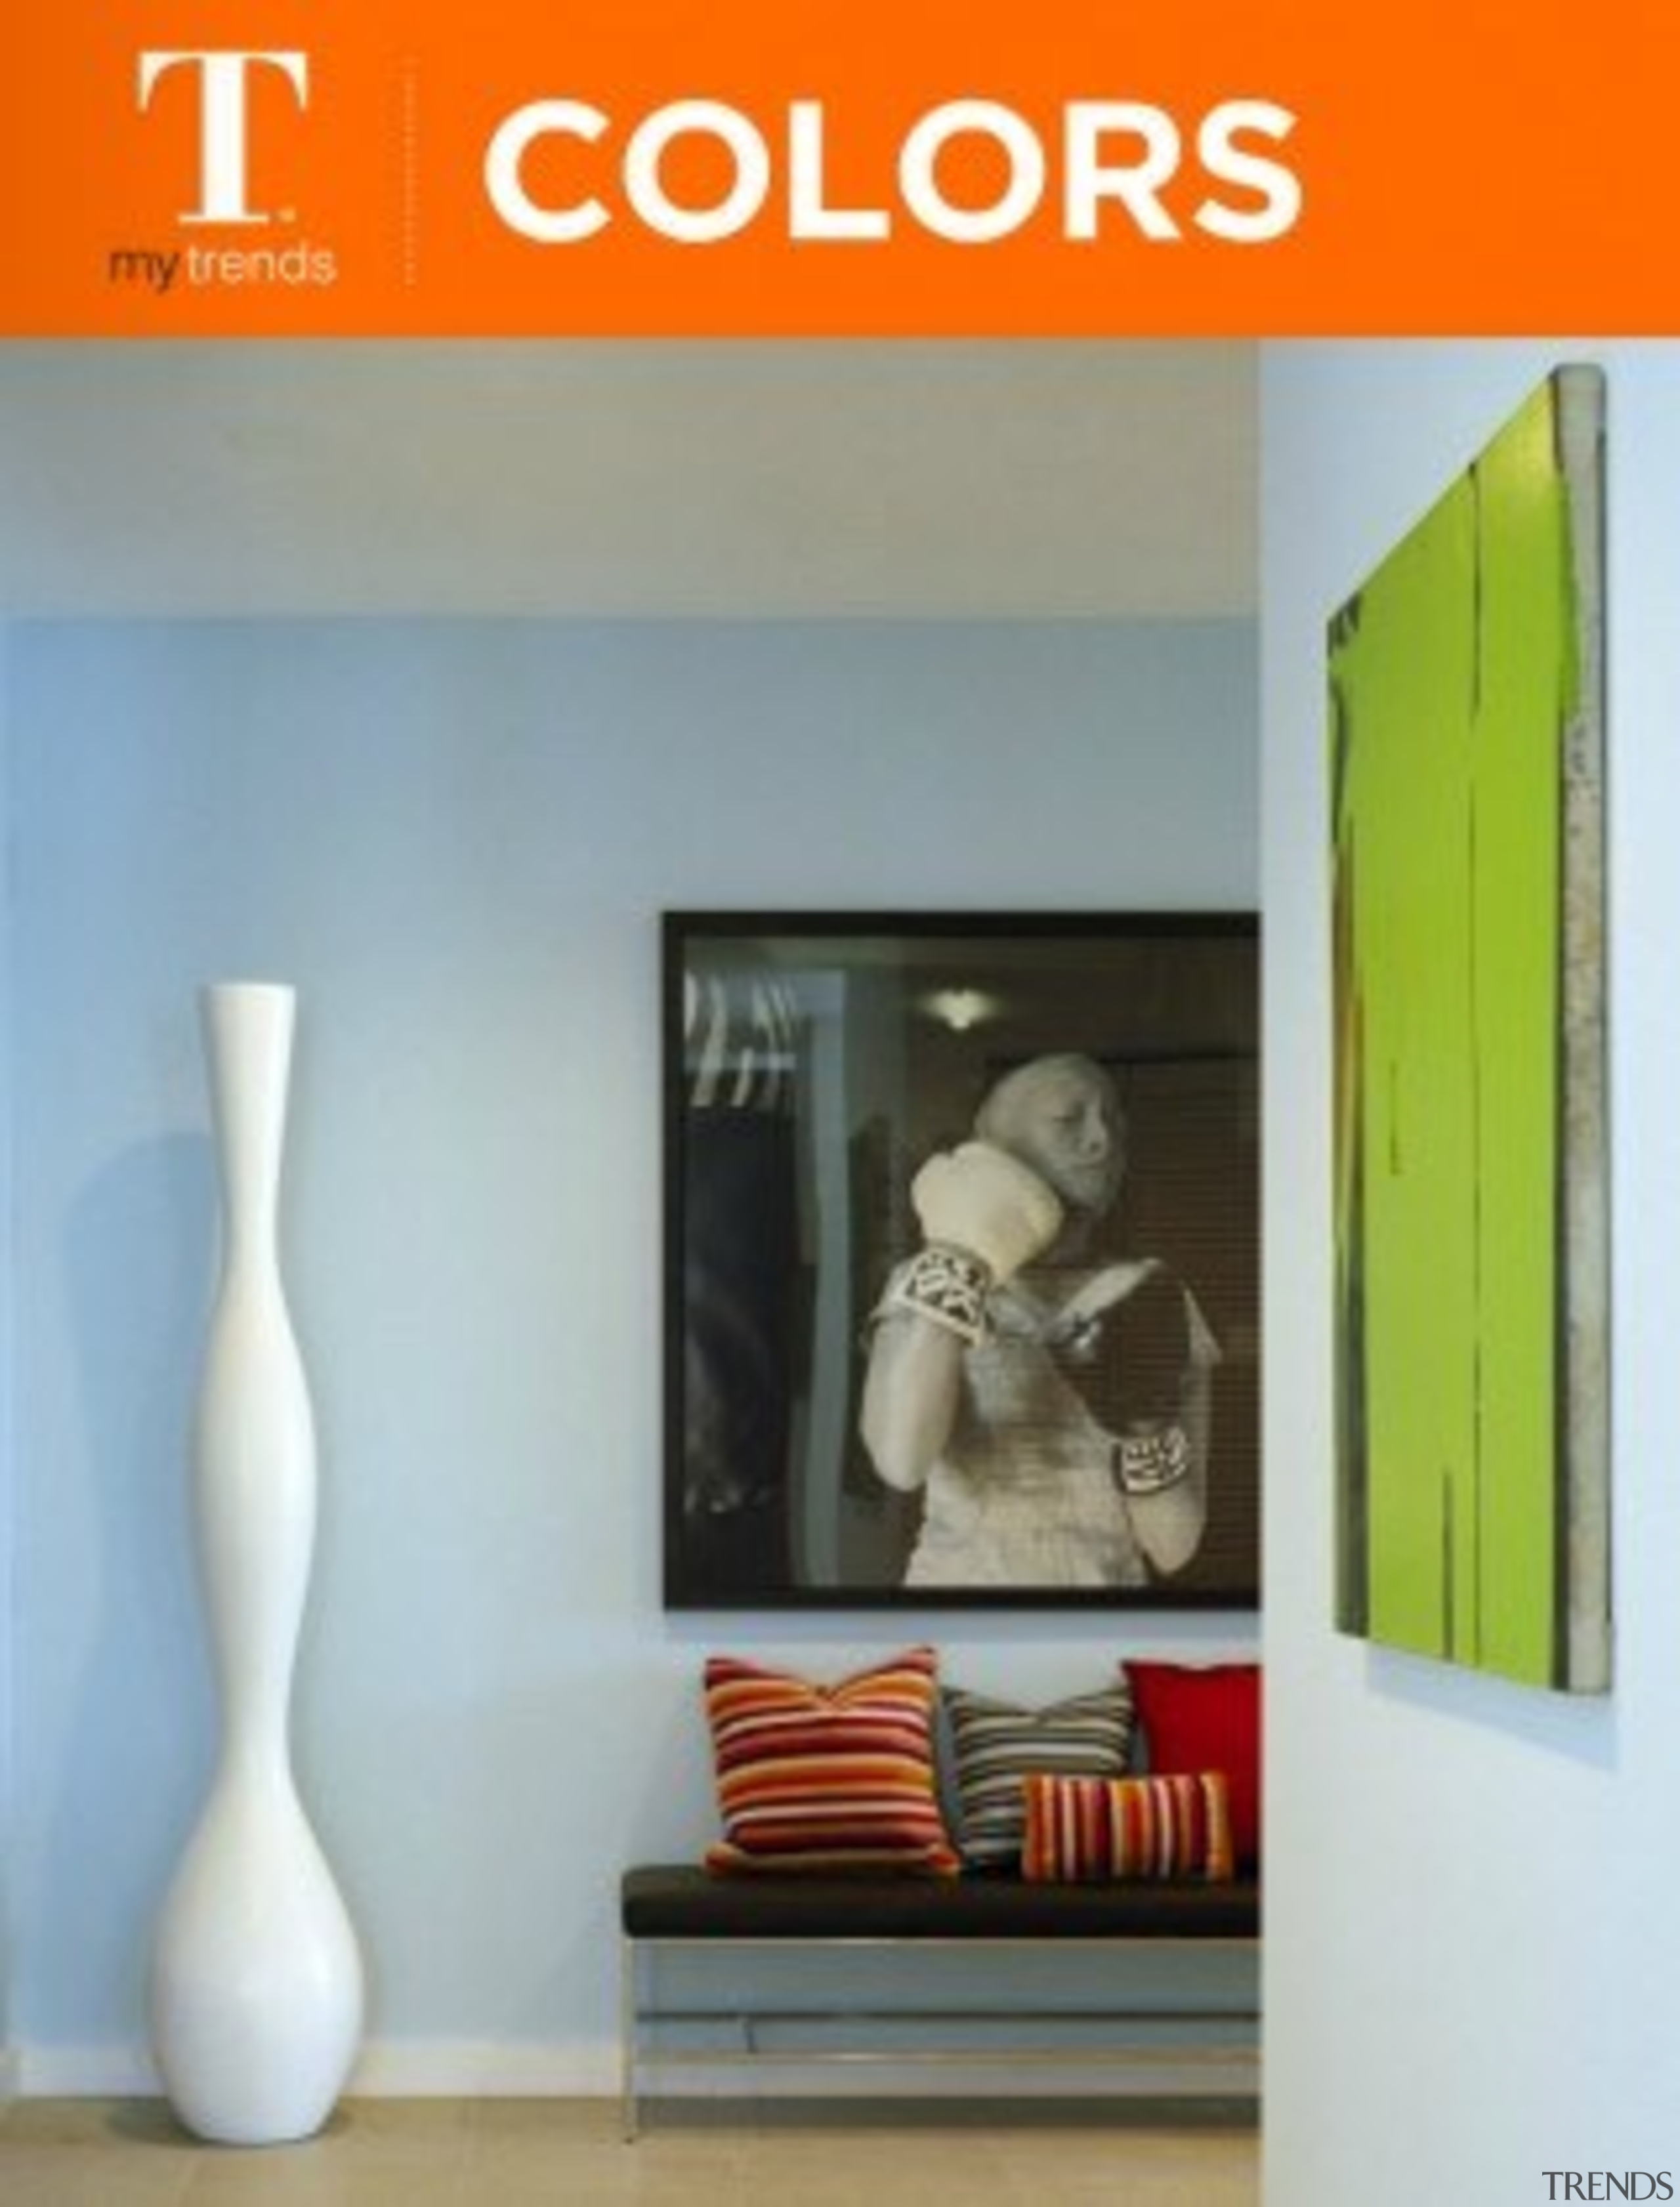 Colours - interior design | shelf | gray interior design, shelf, gray